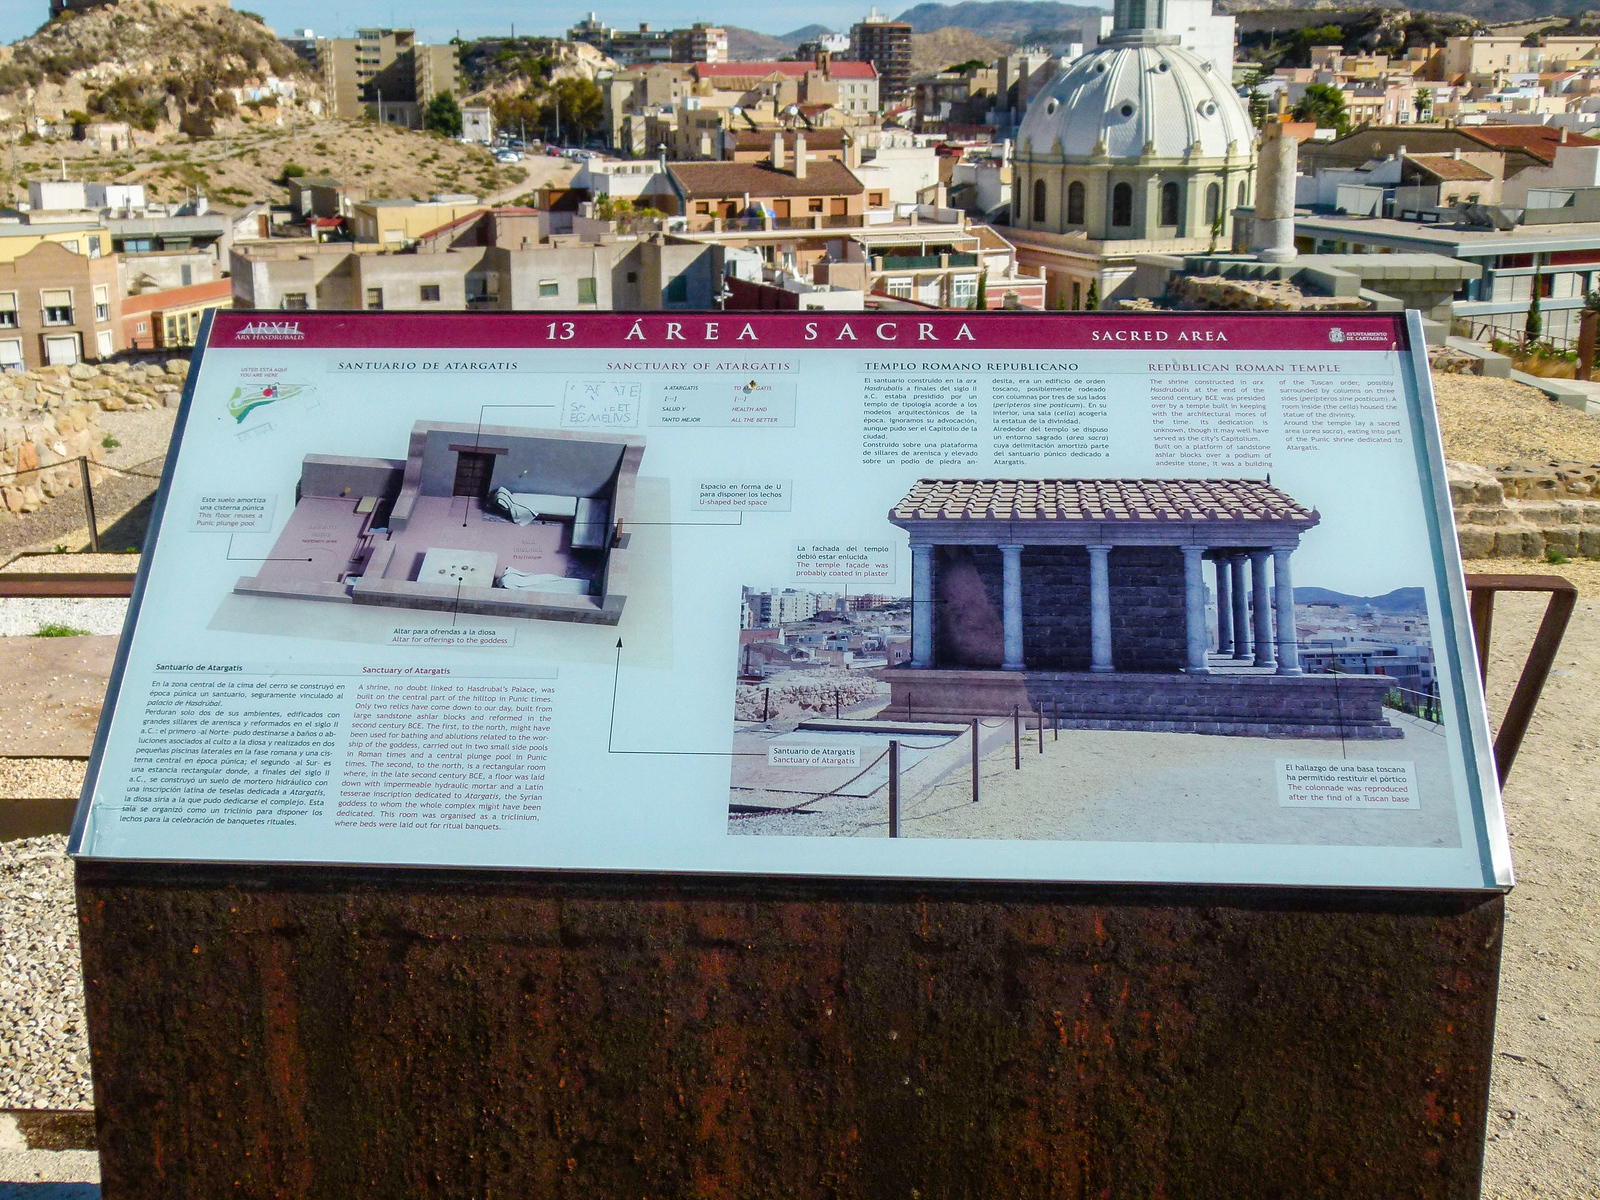 Architectural sign overlooking the domes and roofs in Cartagena, Spain.